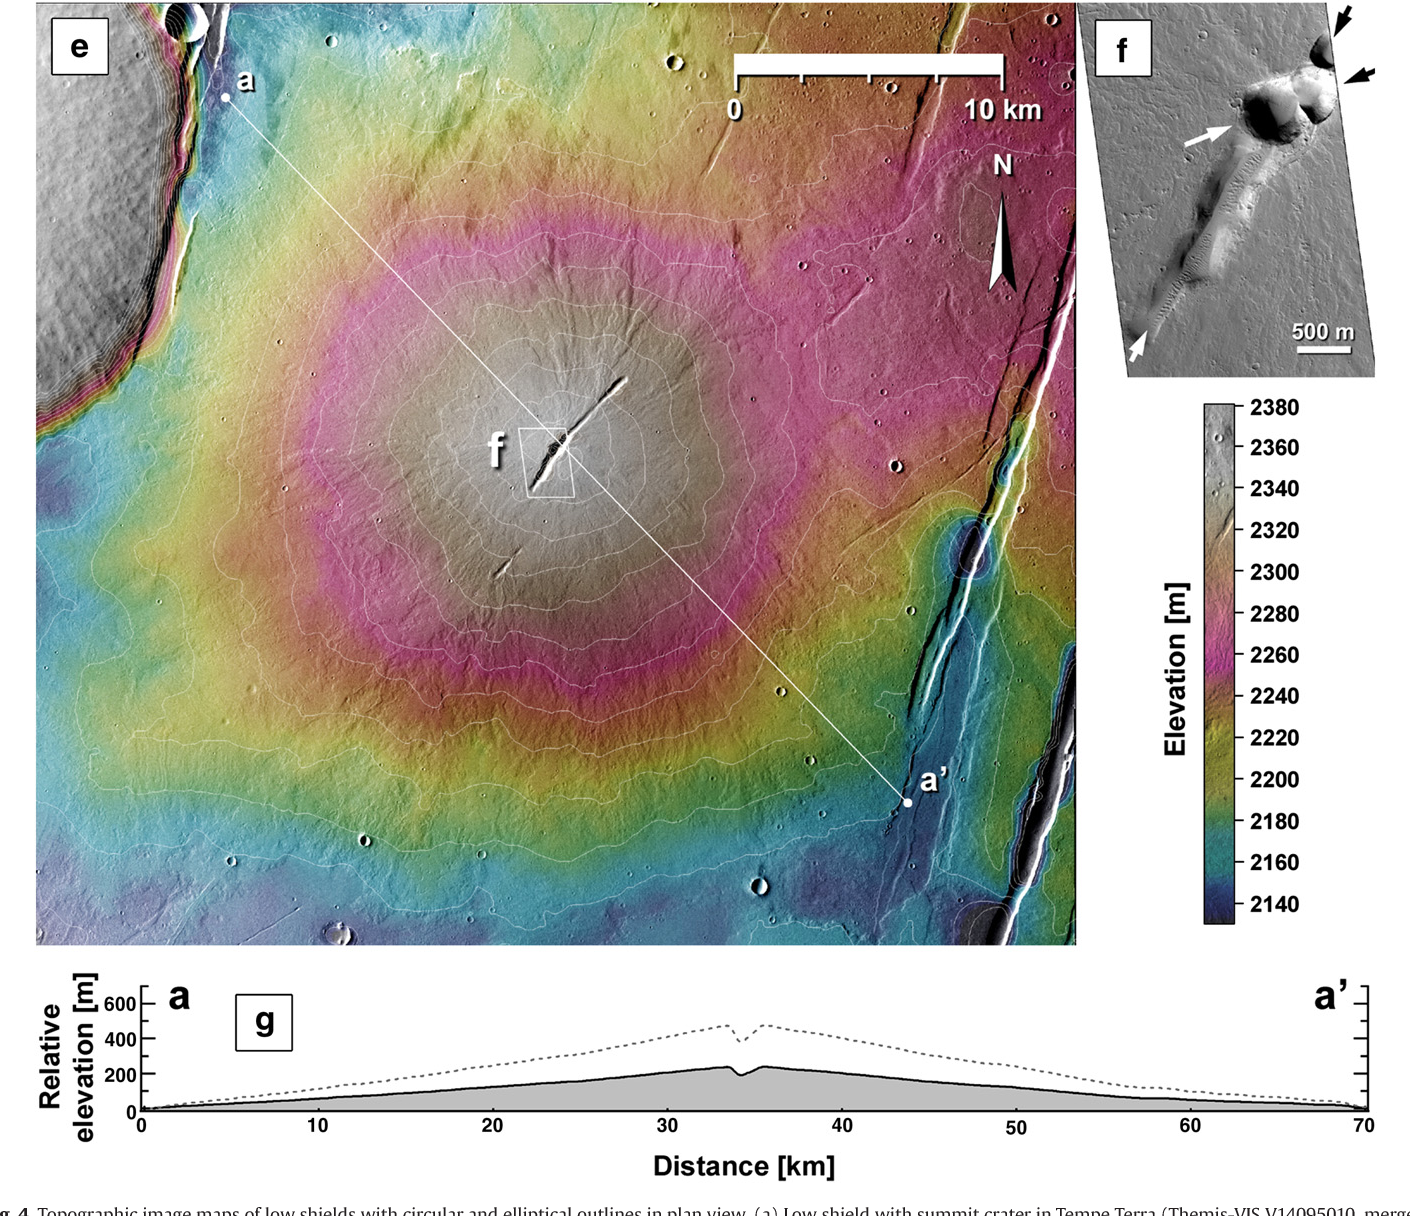 Figure 4 from The topography and morphology of low shields